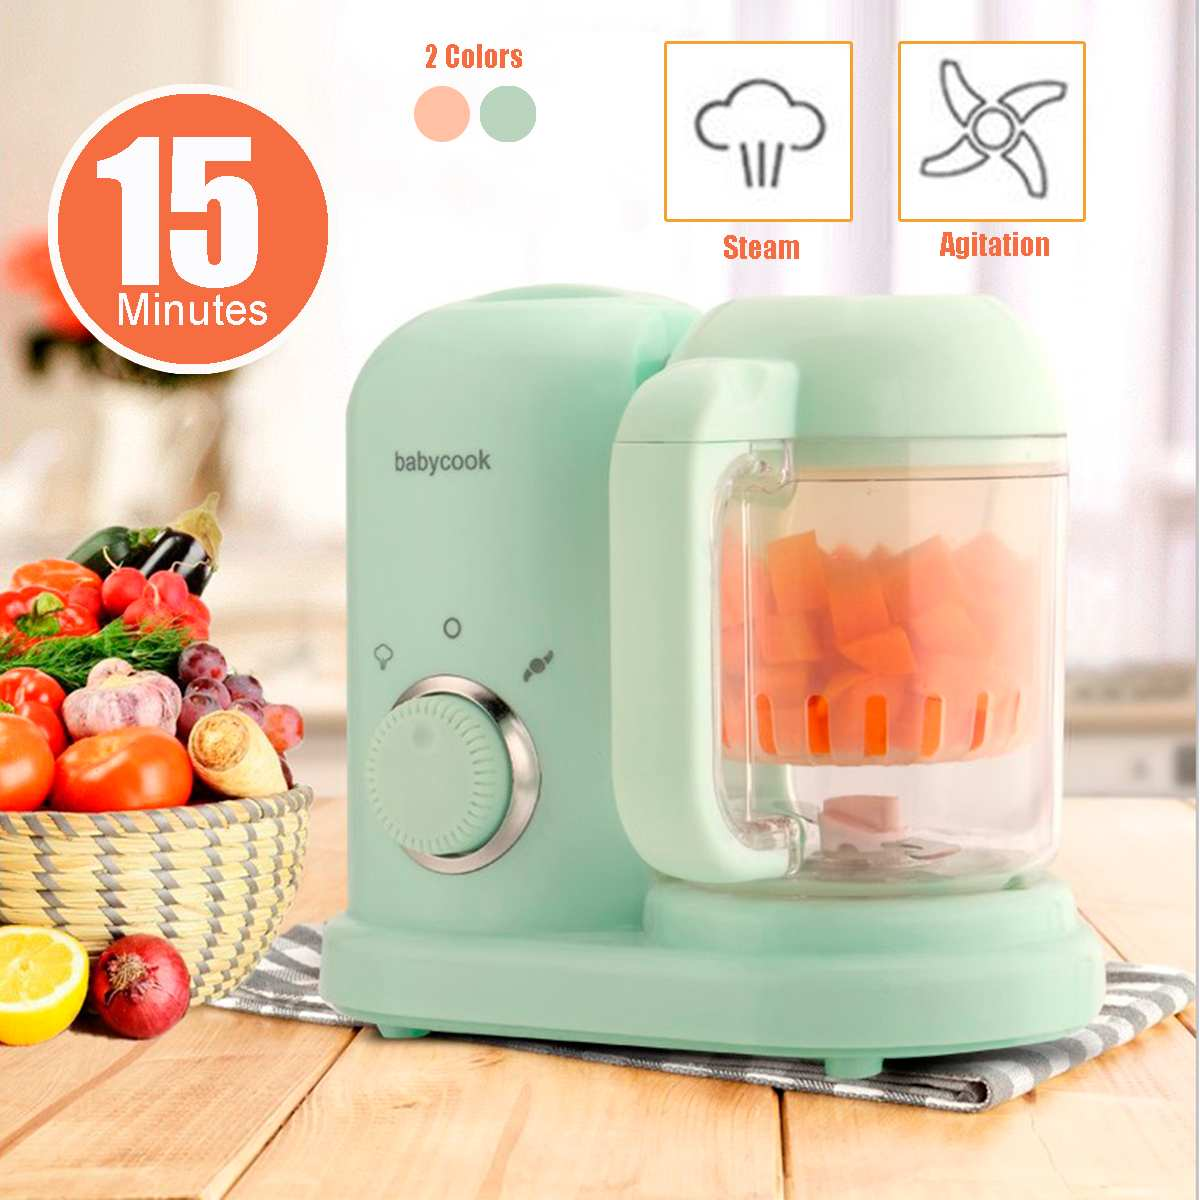 Electric Baby Food Maker Multifunction Children Food Cooking Maker Steamer Mixing Grinder Blenders Processor Juicing Stirring